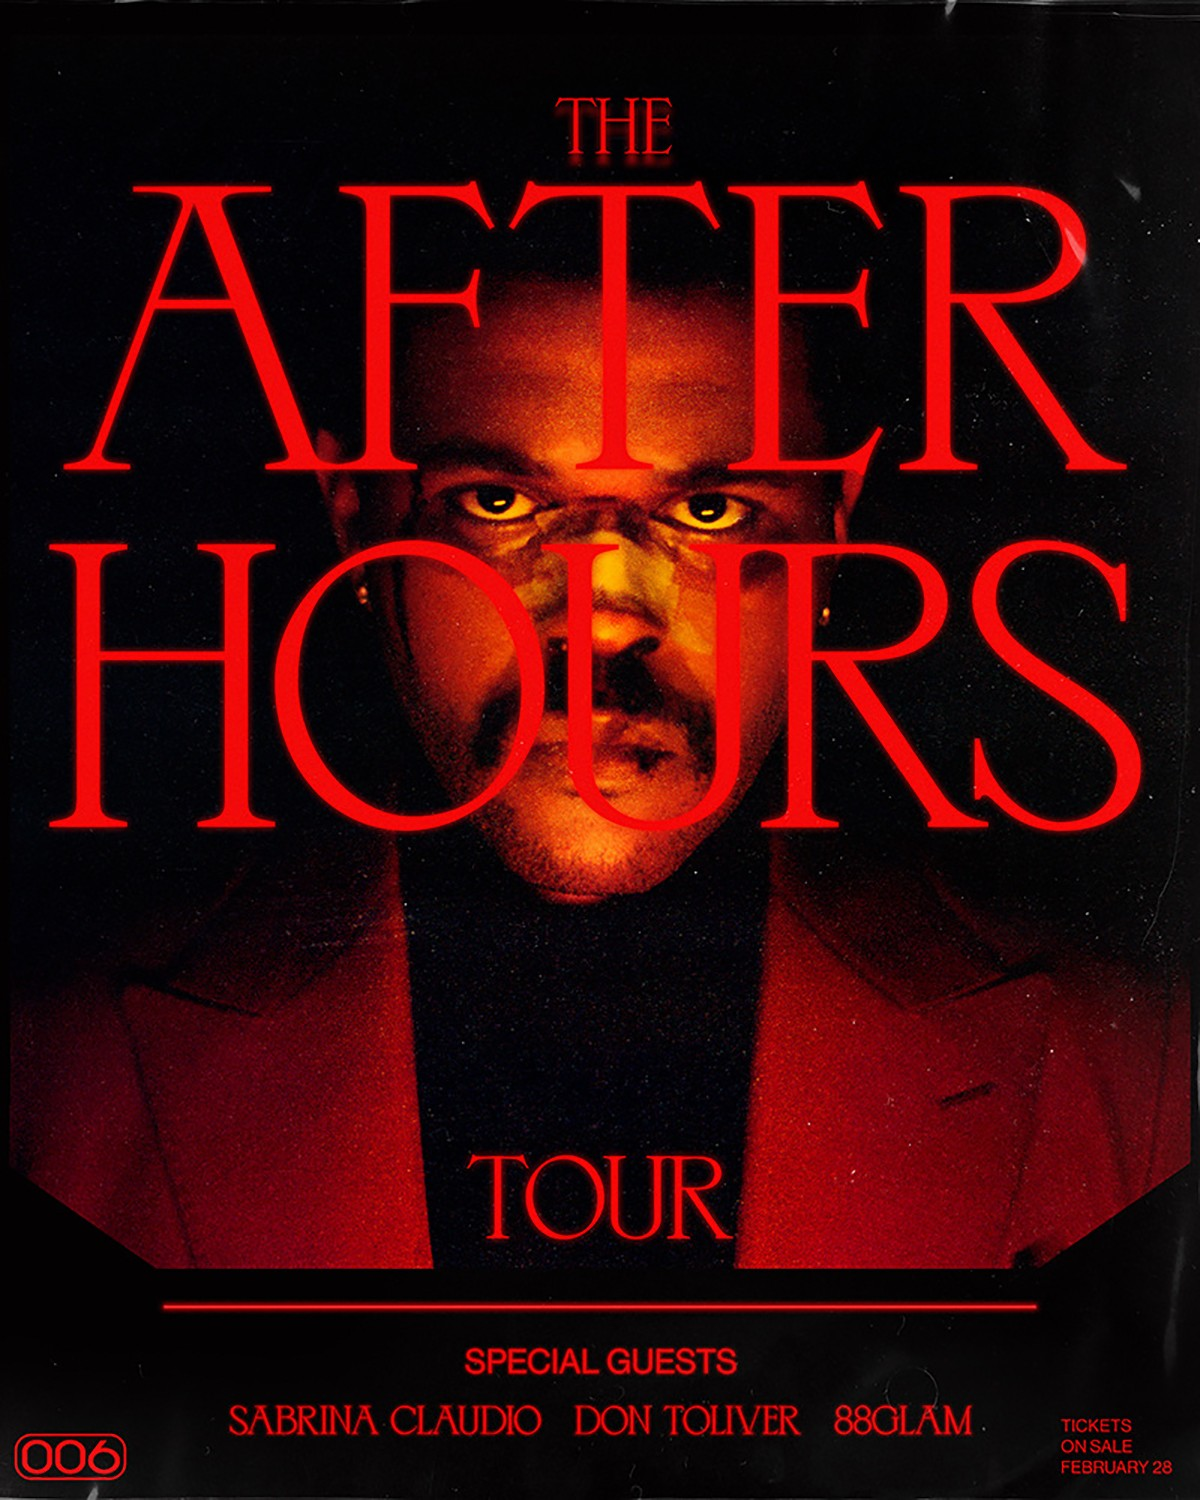 The Weeknd 'After Hours' Tour Dates for Europe featuring Don Toliver Sabrina Claudio 88GLAM Live Music UK New Music O2 Arena Listen Watch HYPEBEAST Toronto London